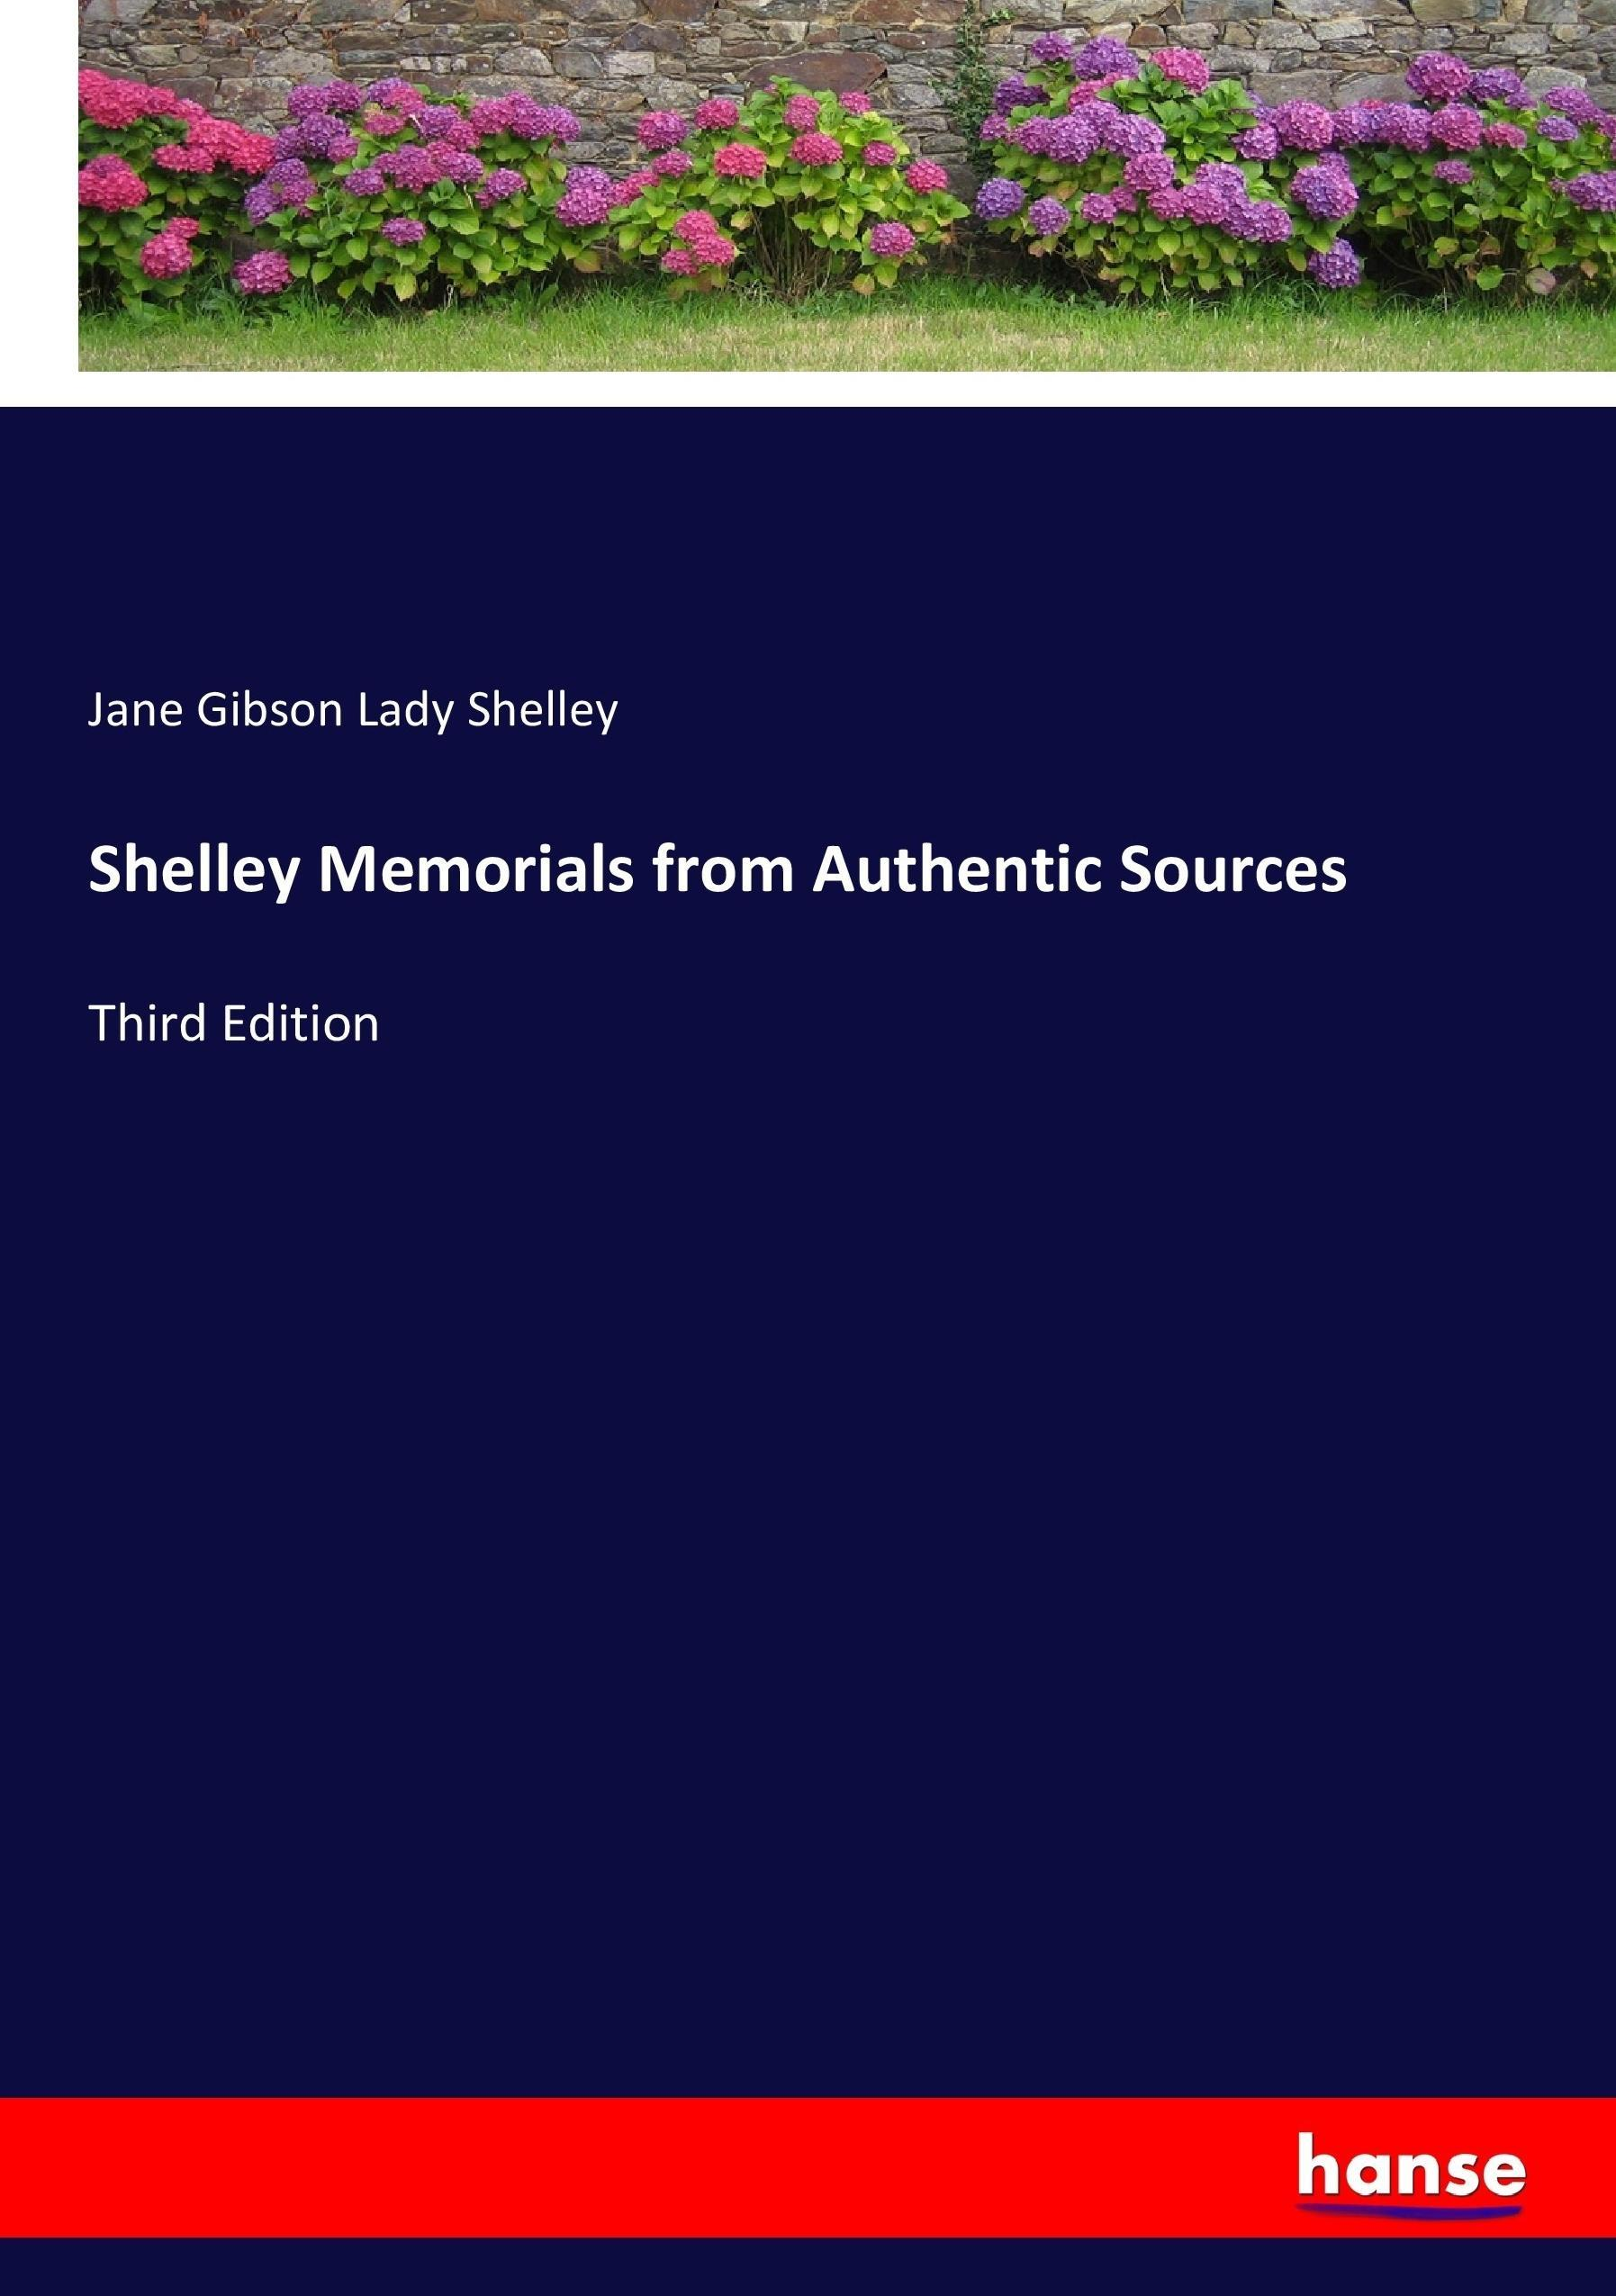 Jane-Gibson-Lady-Shelley-Shelley-Memorials-from-Authentic-So-9783337024079